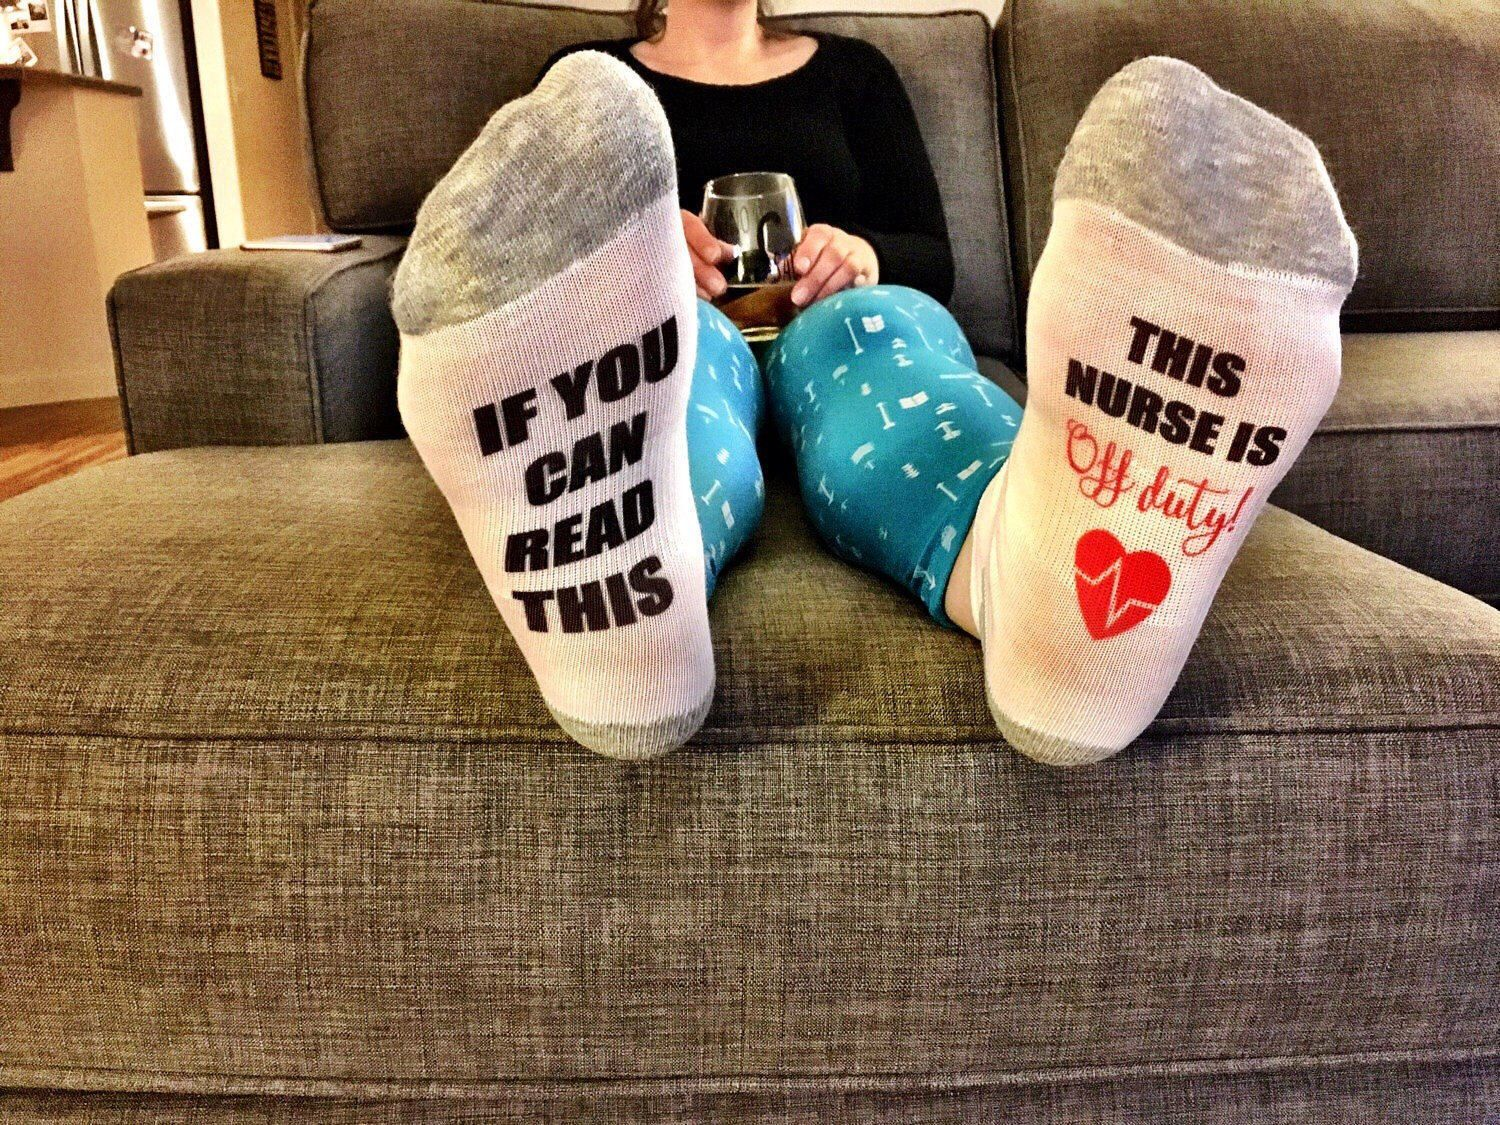 Nurses week if you can read this sock this nurse is off duty if you can read this sock this nurse is off duty rn gift nurse appreciation gift for nurse nurse gift rn gifts nurse socks by solutioingenieria Gallery